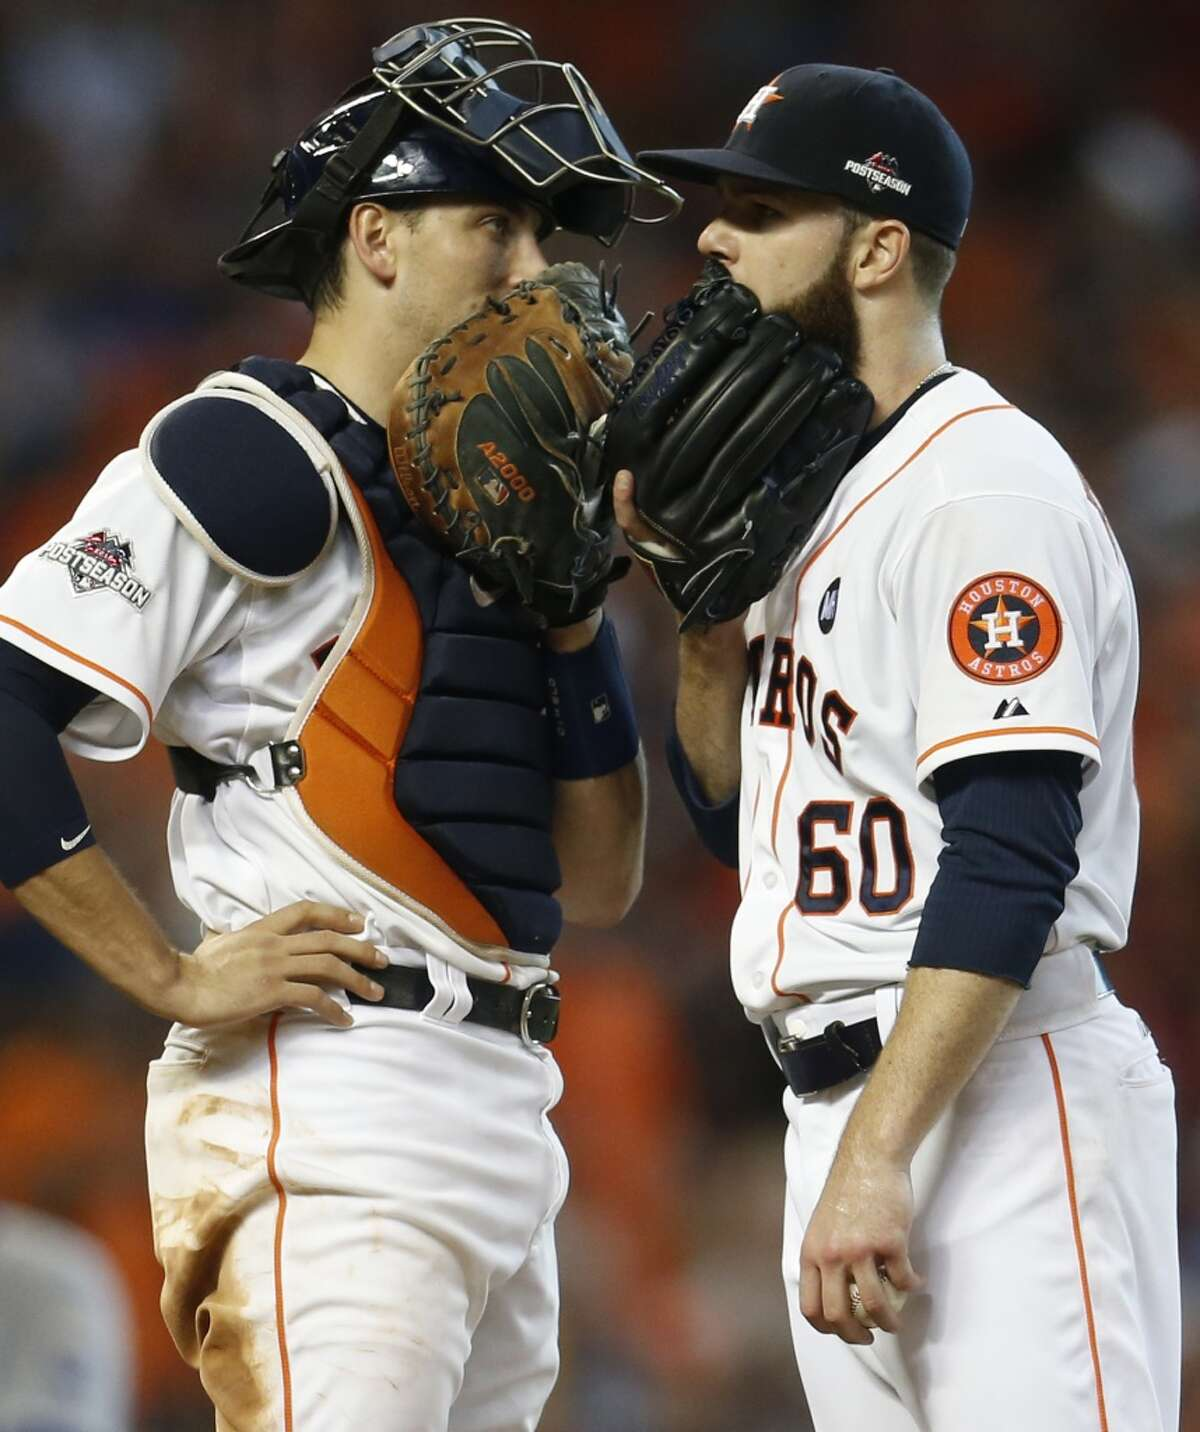 Houston Astros catcher Jason Castro (15) and starter Dallas Keuchel (60) talk on the mound during the seventh inning of Game 3 of the American League Division Series at Minute Maid Park on Sunday, Oct. 11, 2015, in Houston. ( Karen Warren / Houston Chronicle )